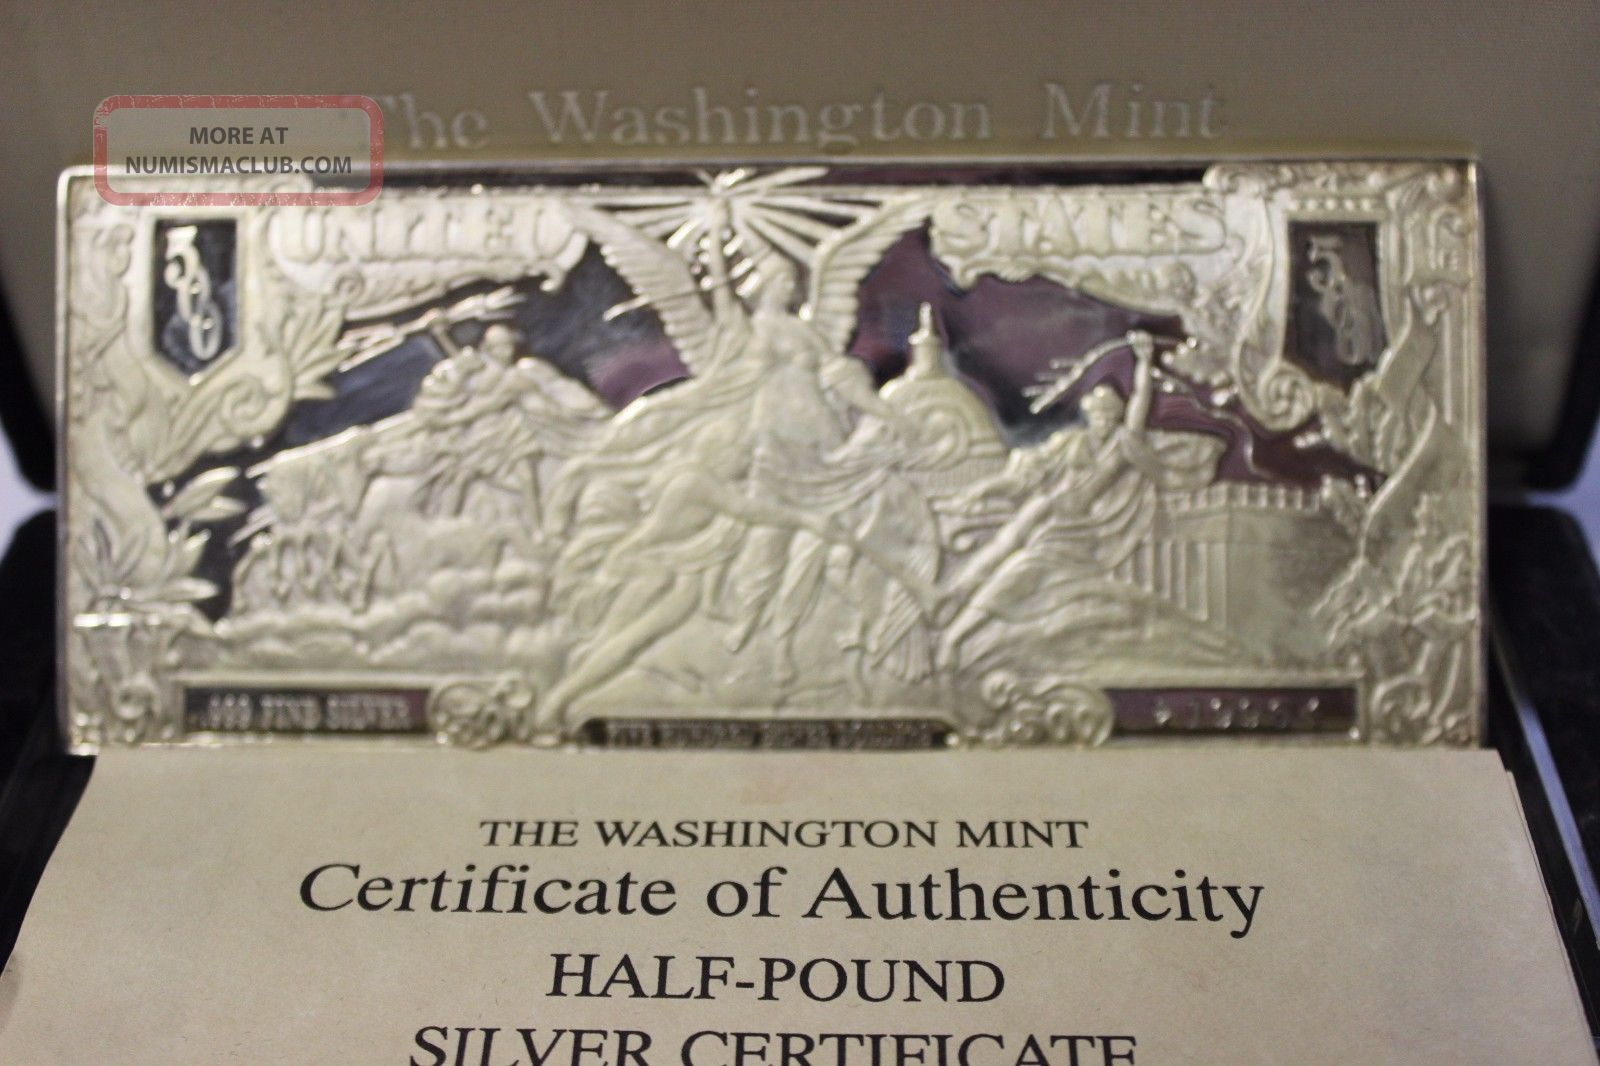 1996 8 Troy Ounces Half Pound 999 Fine Silver Bar